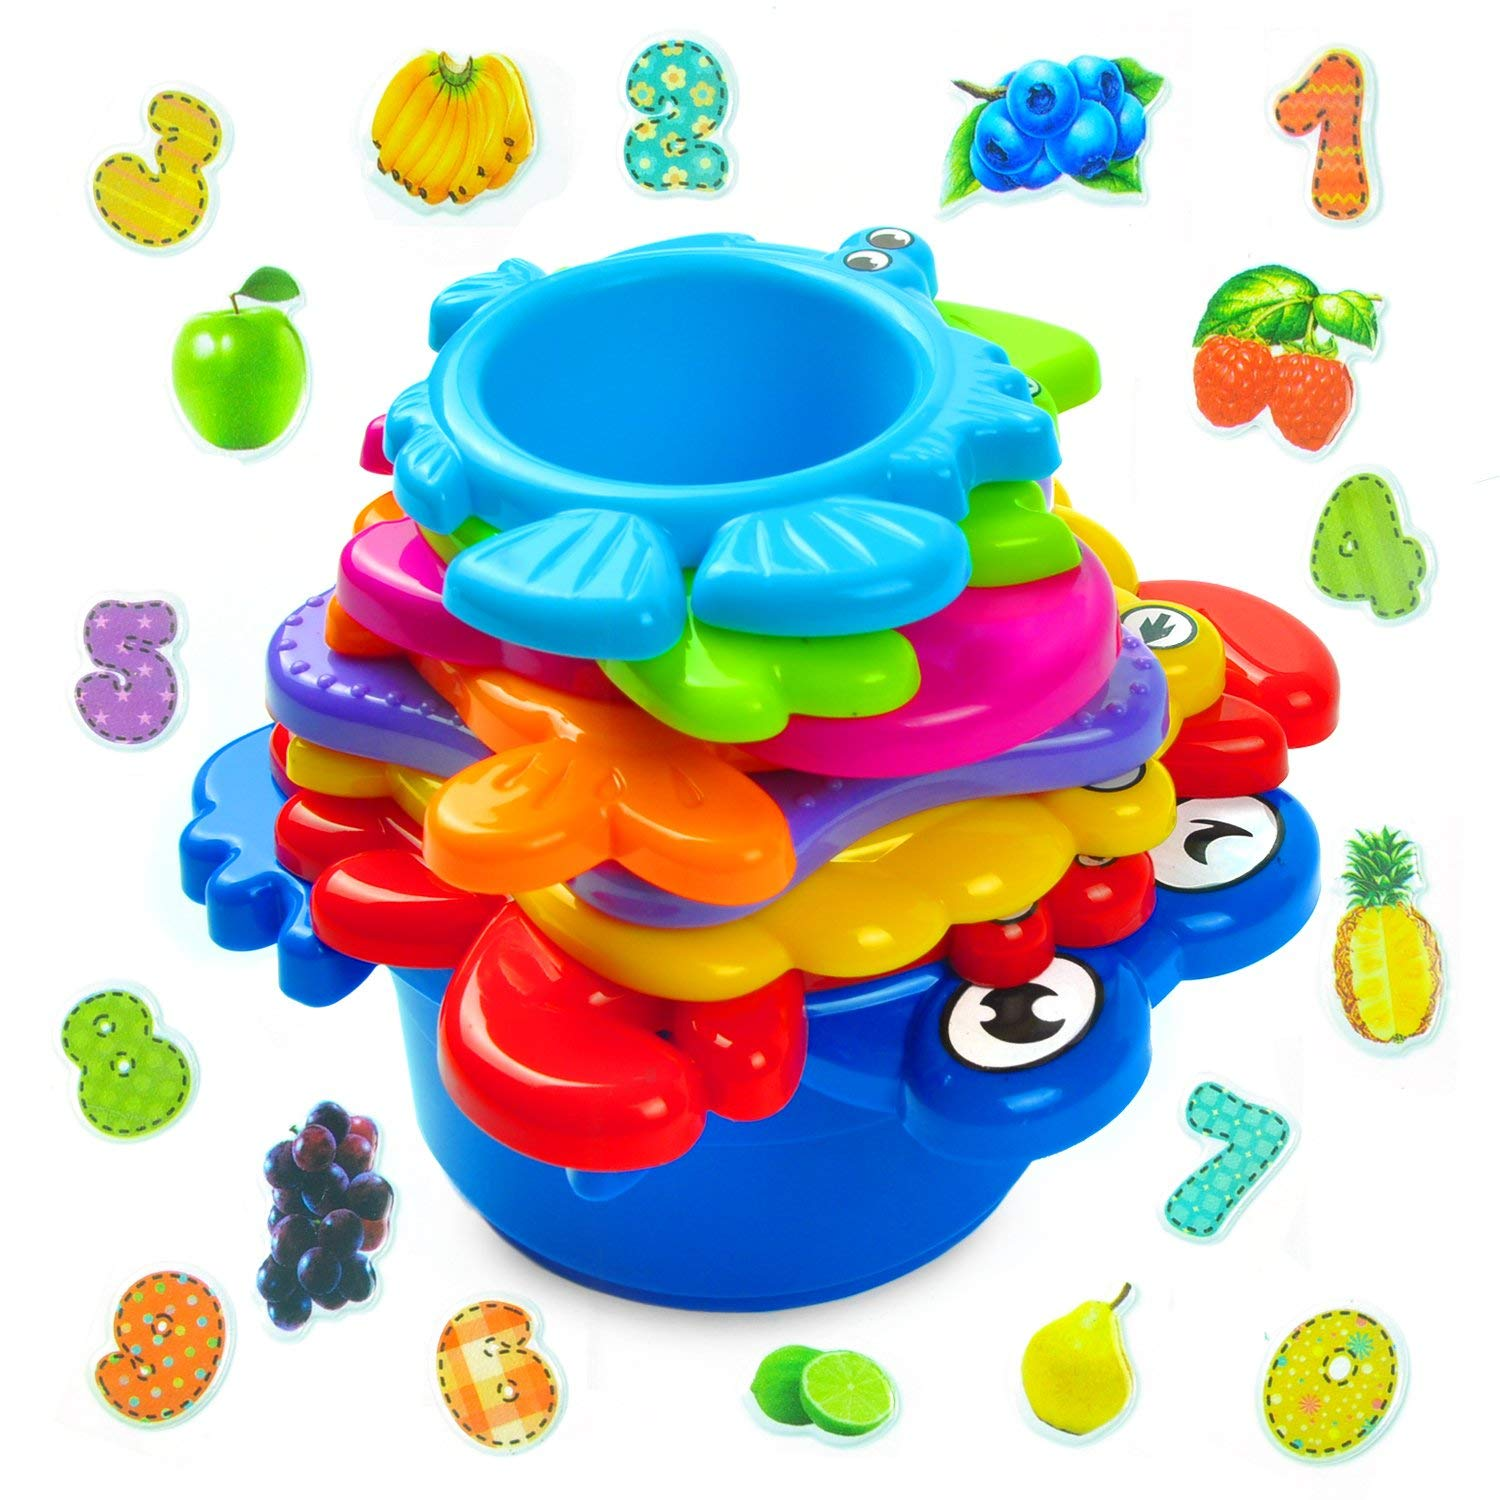 aGreatLife Stacking Cups Bath Toys for Toddlers: My First Under The Sea Animal Stacker with Holes for Sprinkling Water and Sifting Sand - Includes Fun and Brightly Colored Numbers and Fruits Stickers B01MQCKDKM